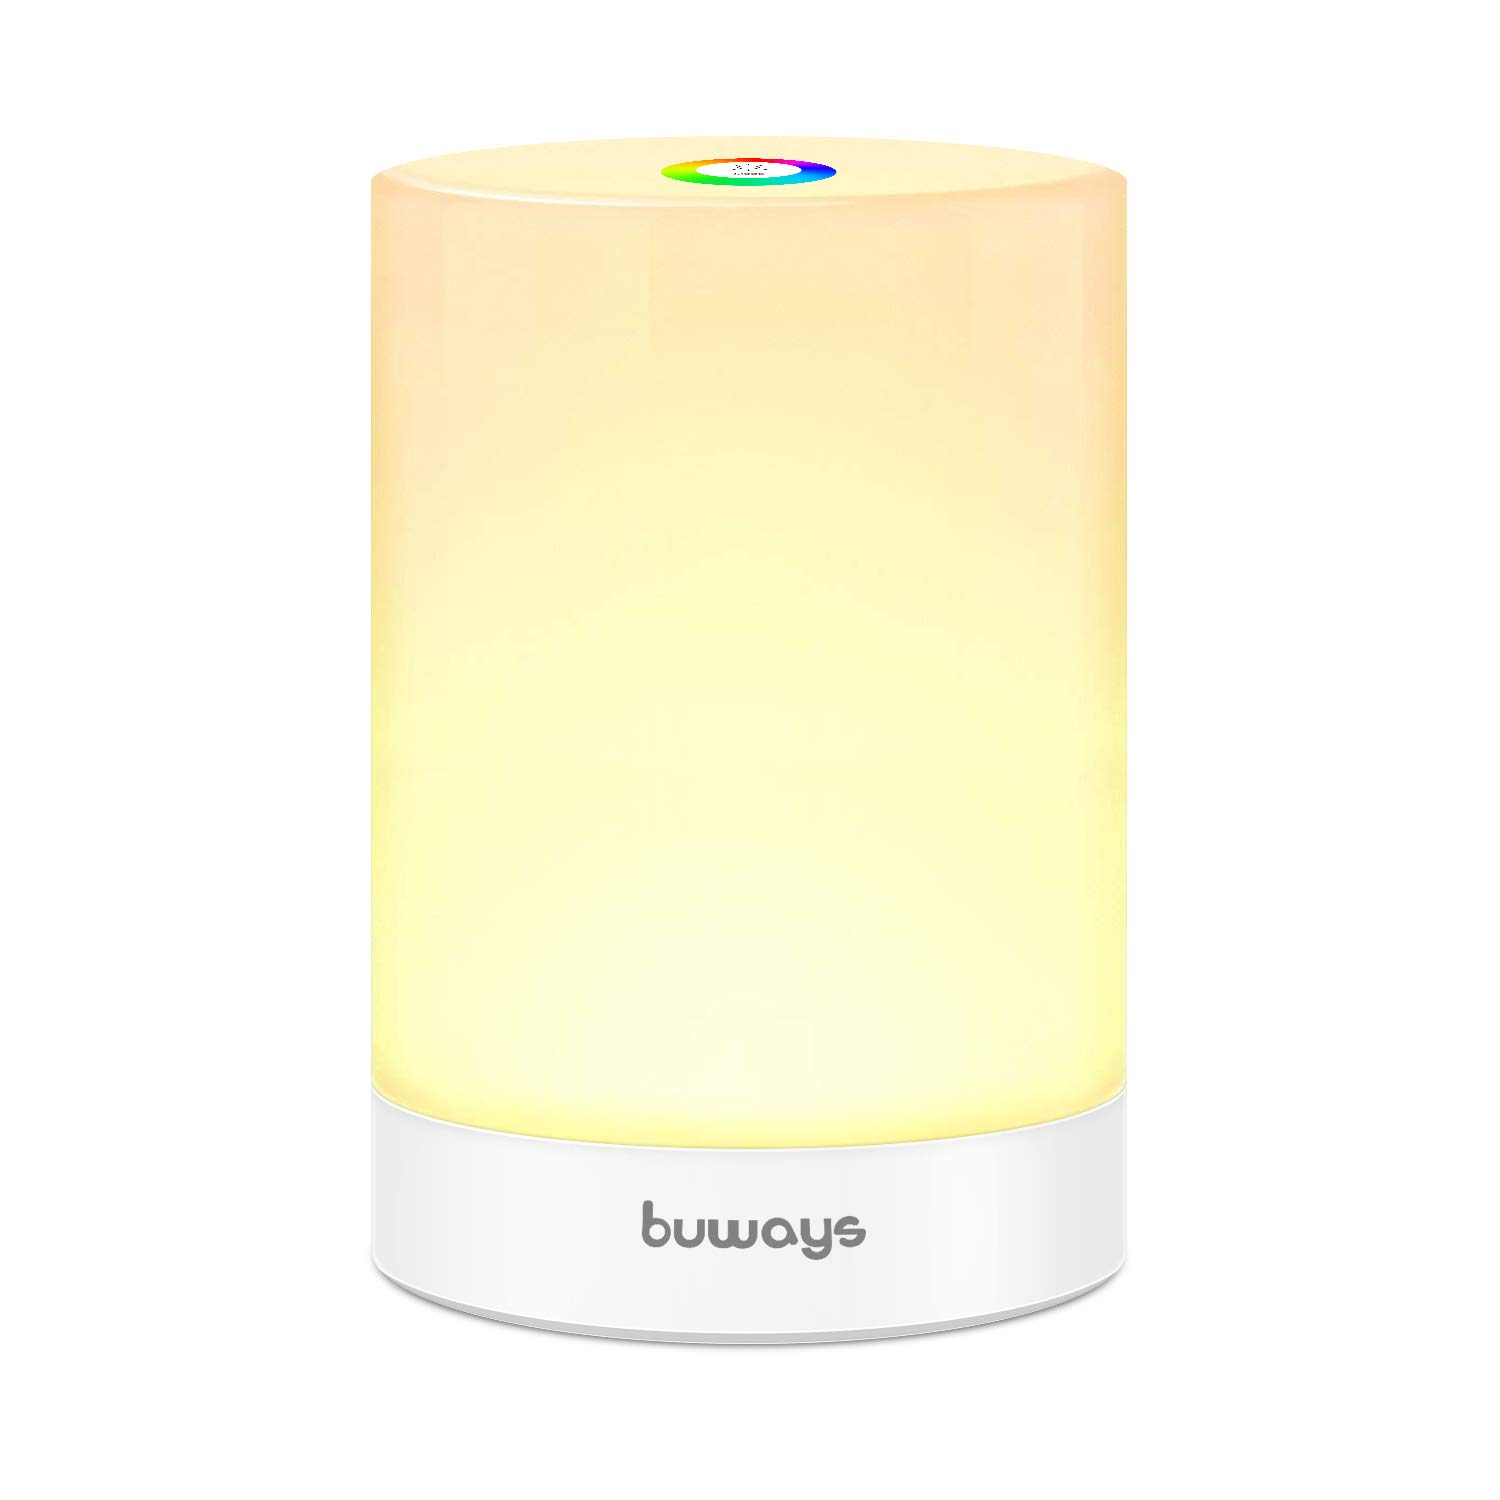 buways Night Light, LED Table Lamp with Touch Control - Warm White Light & Color Changing RGB, Portable Rechargeable Lamp for Bedrooms Living Room